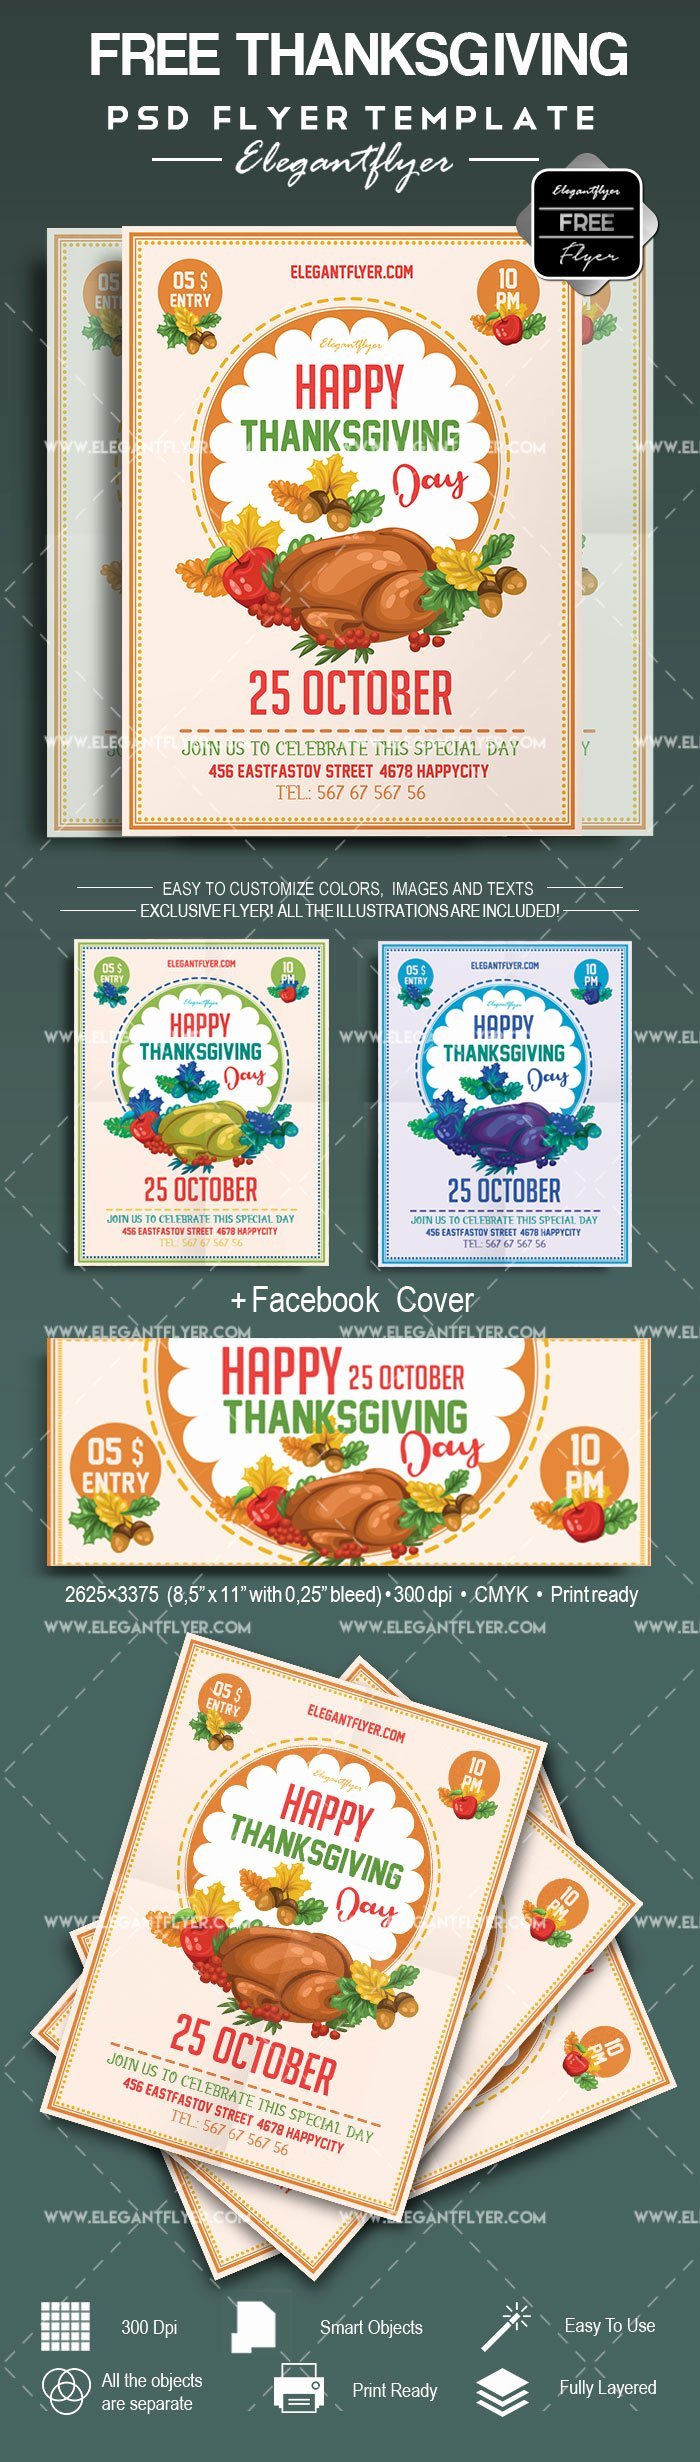 thanksgiving day free flyer psd template cover 2